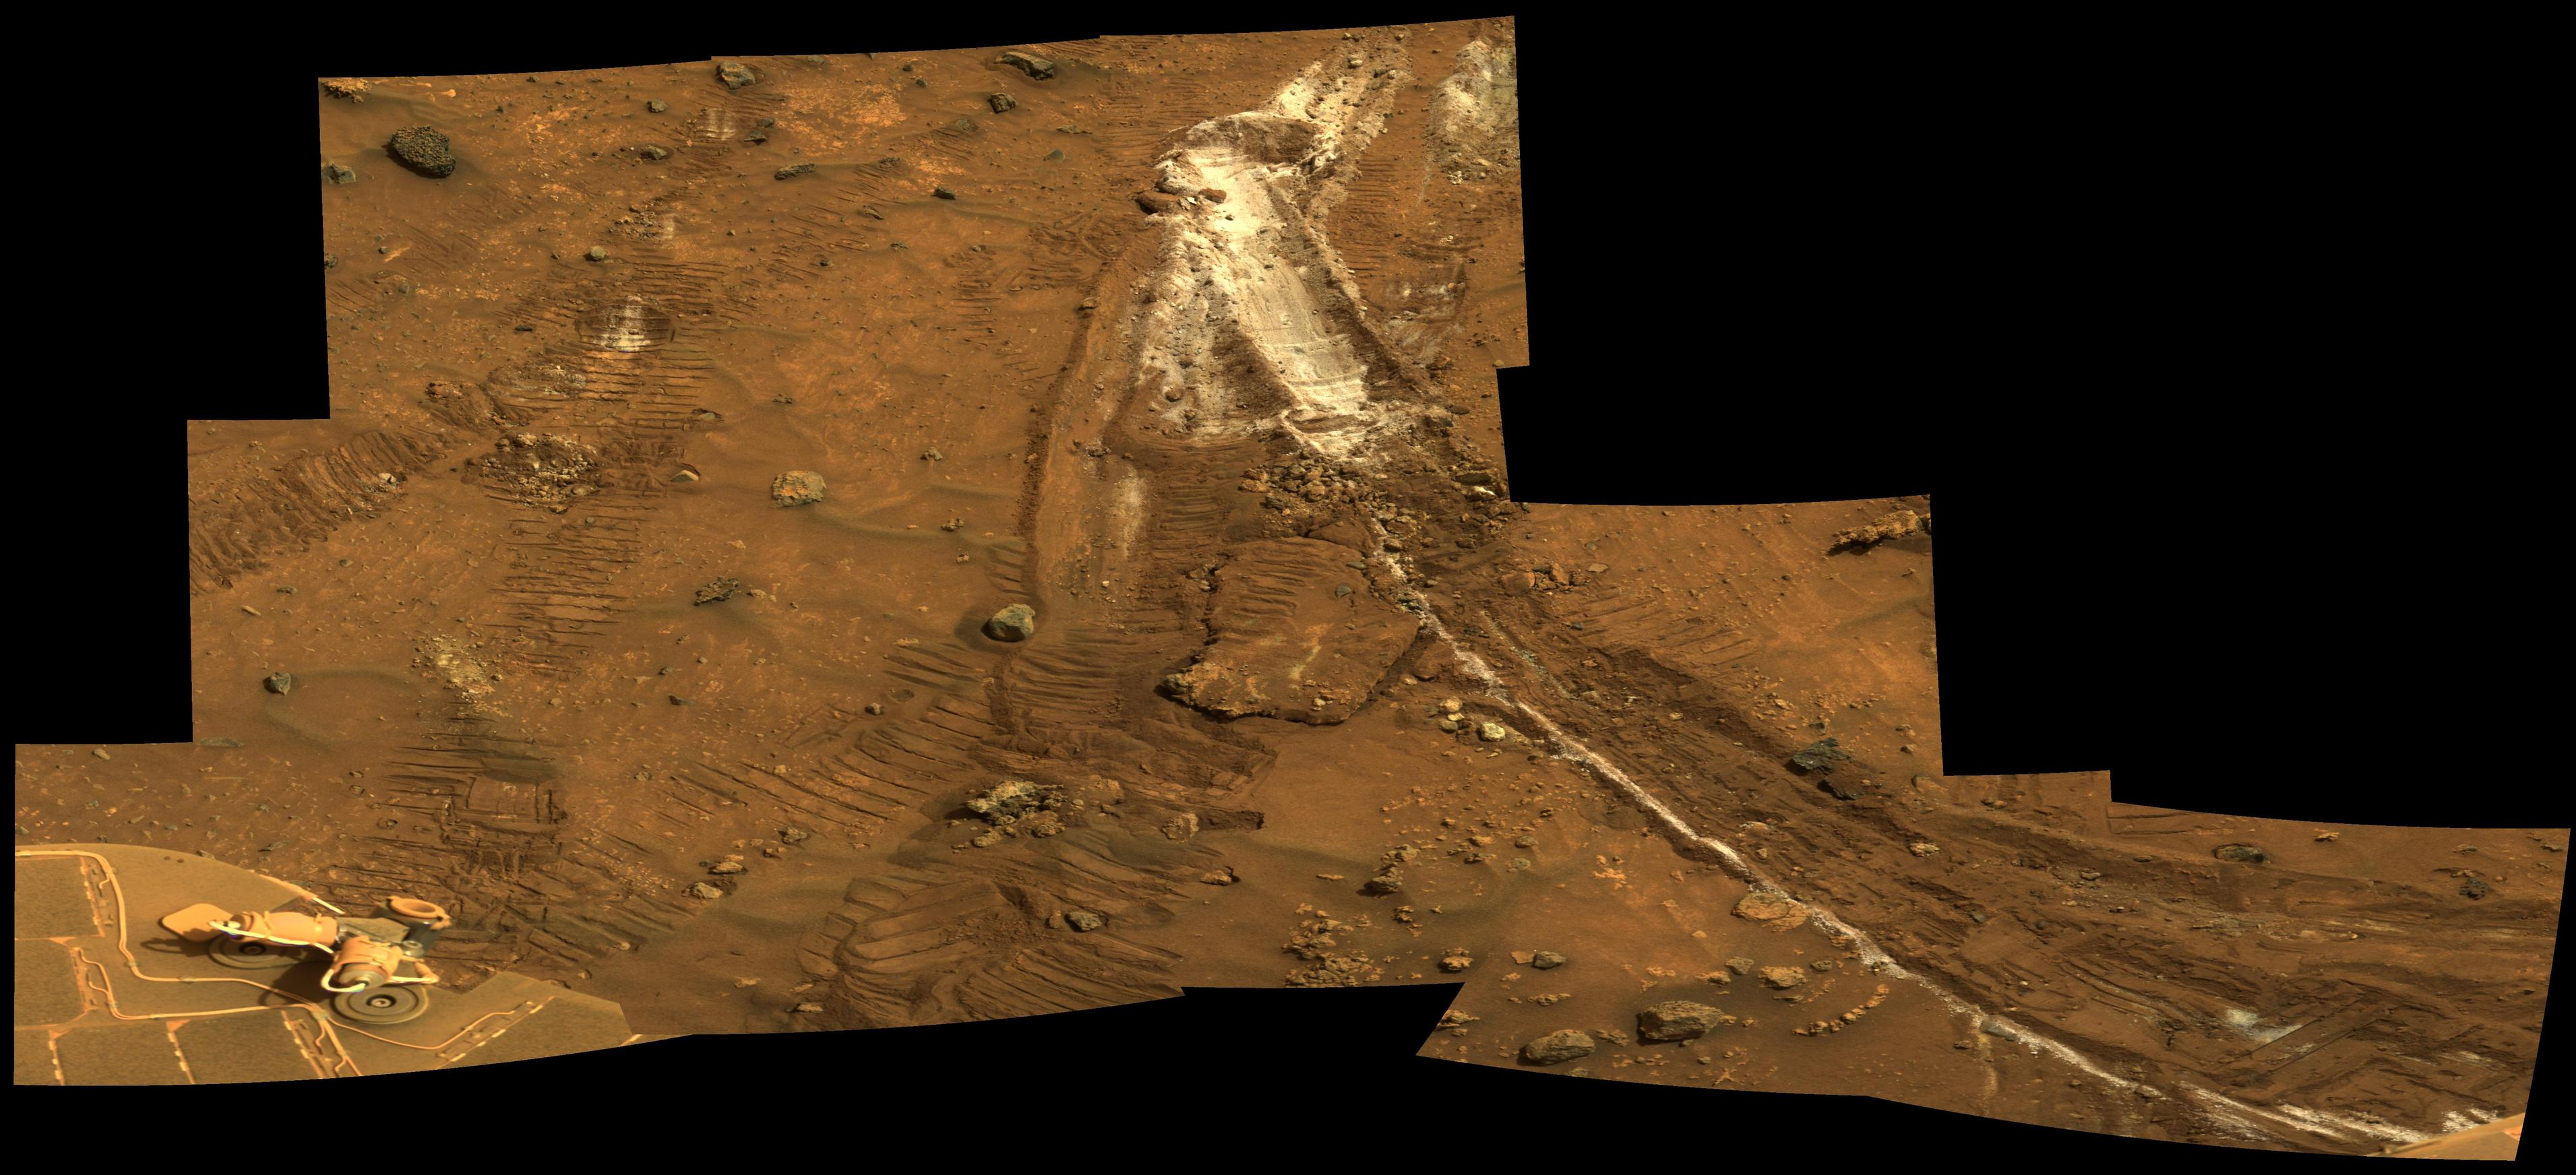 tracks on Mars with a patch of white soil showing